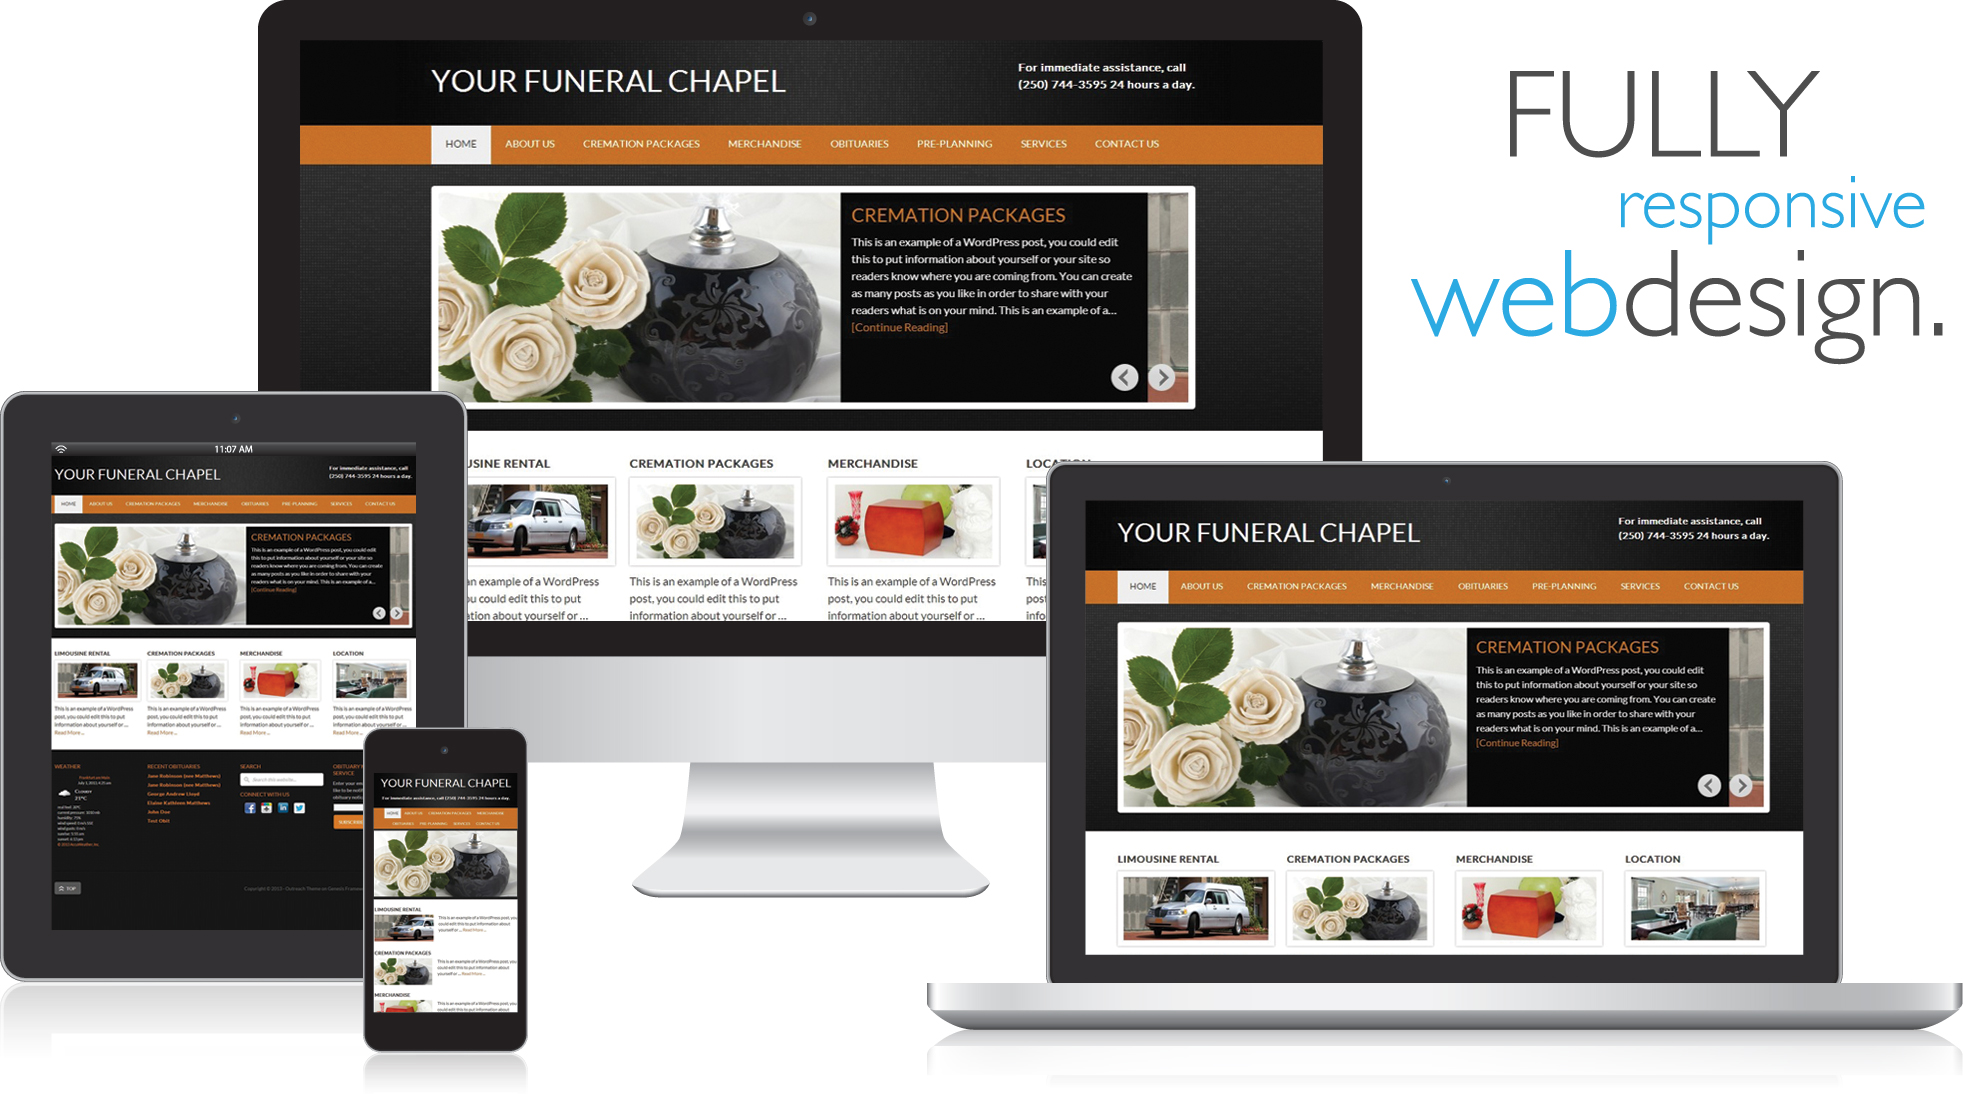 For A Mobile Friendly Funeral Home Website